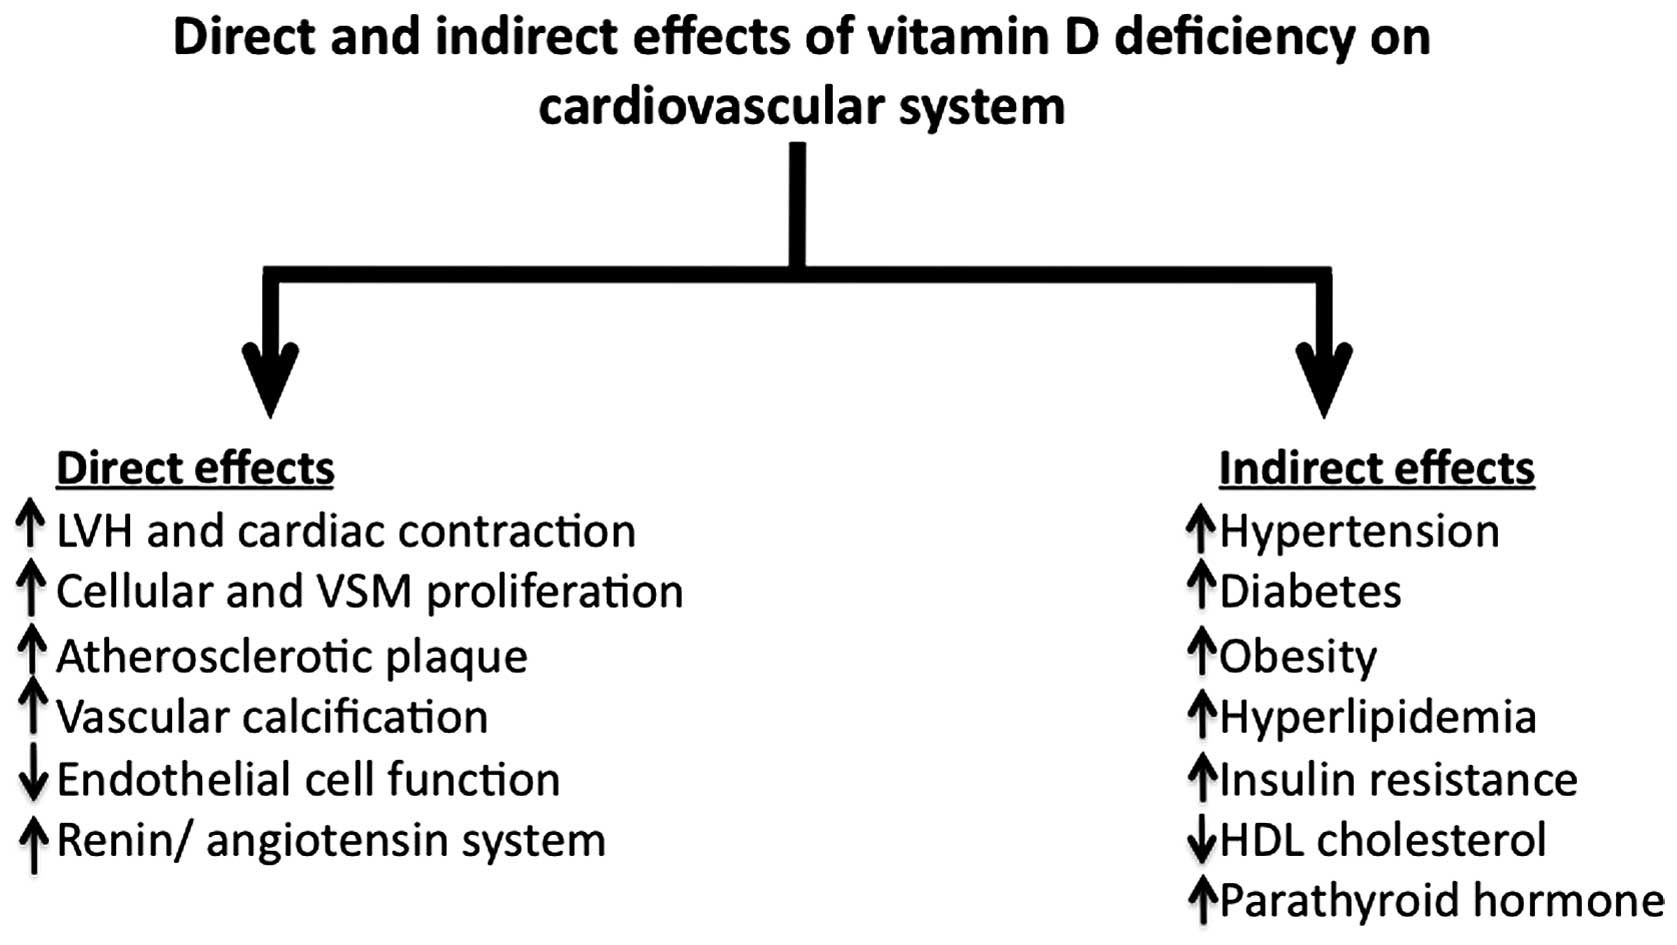 Vitamin D Nutritional Status And The Risk For Cardiovascular Disease